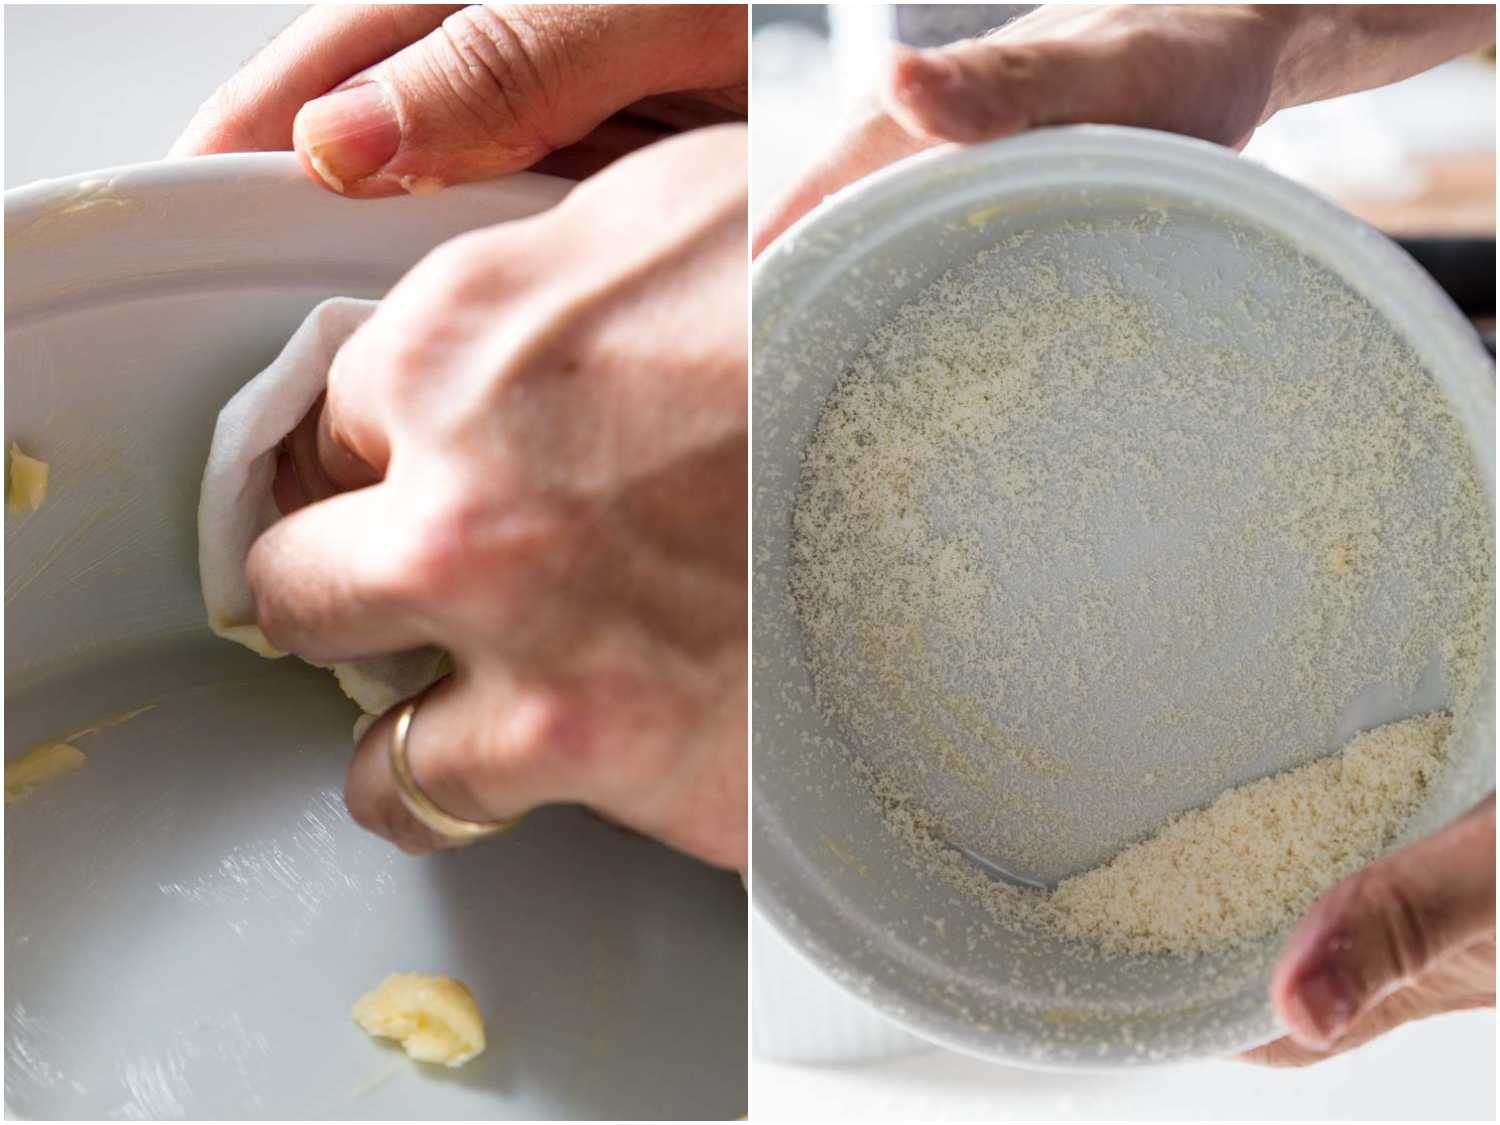 greasing soufflé baking dish and dusting it with grated cheese